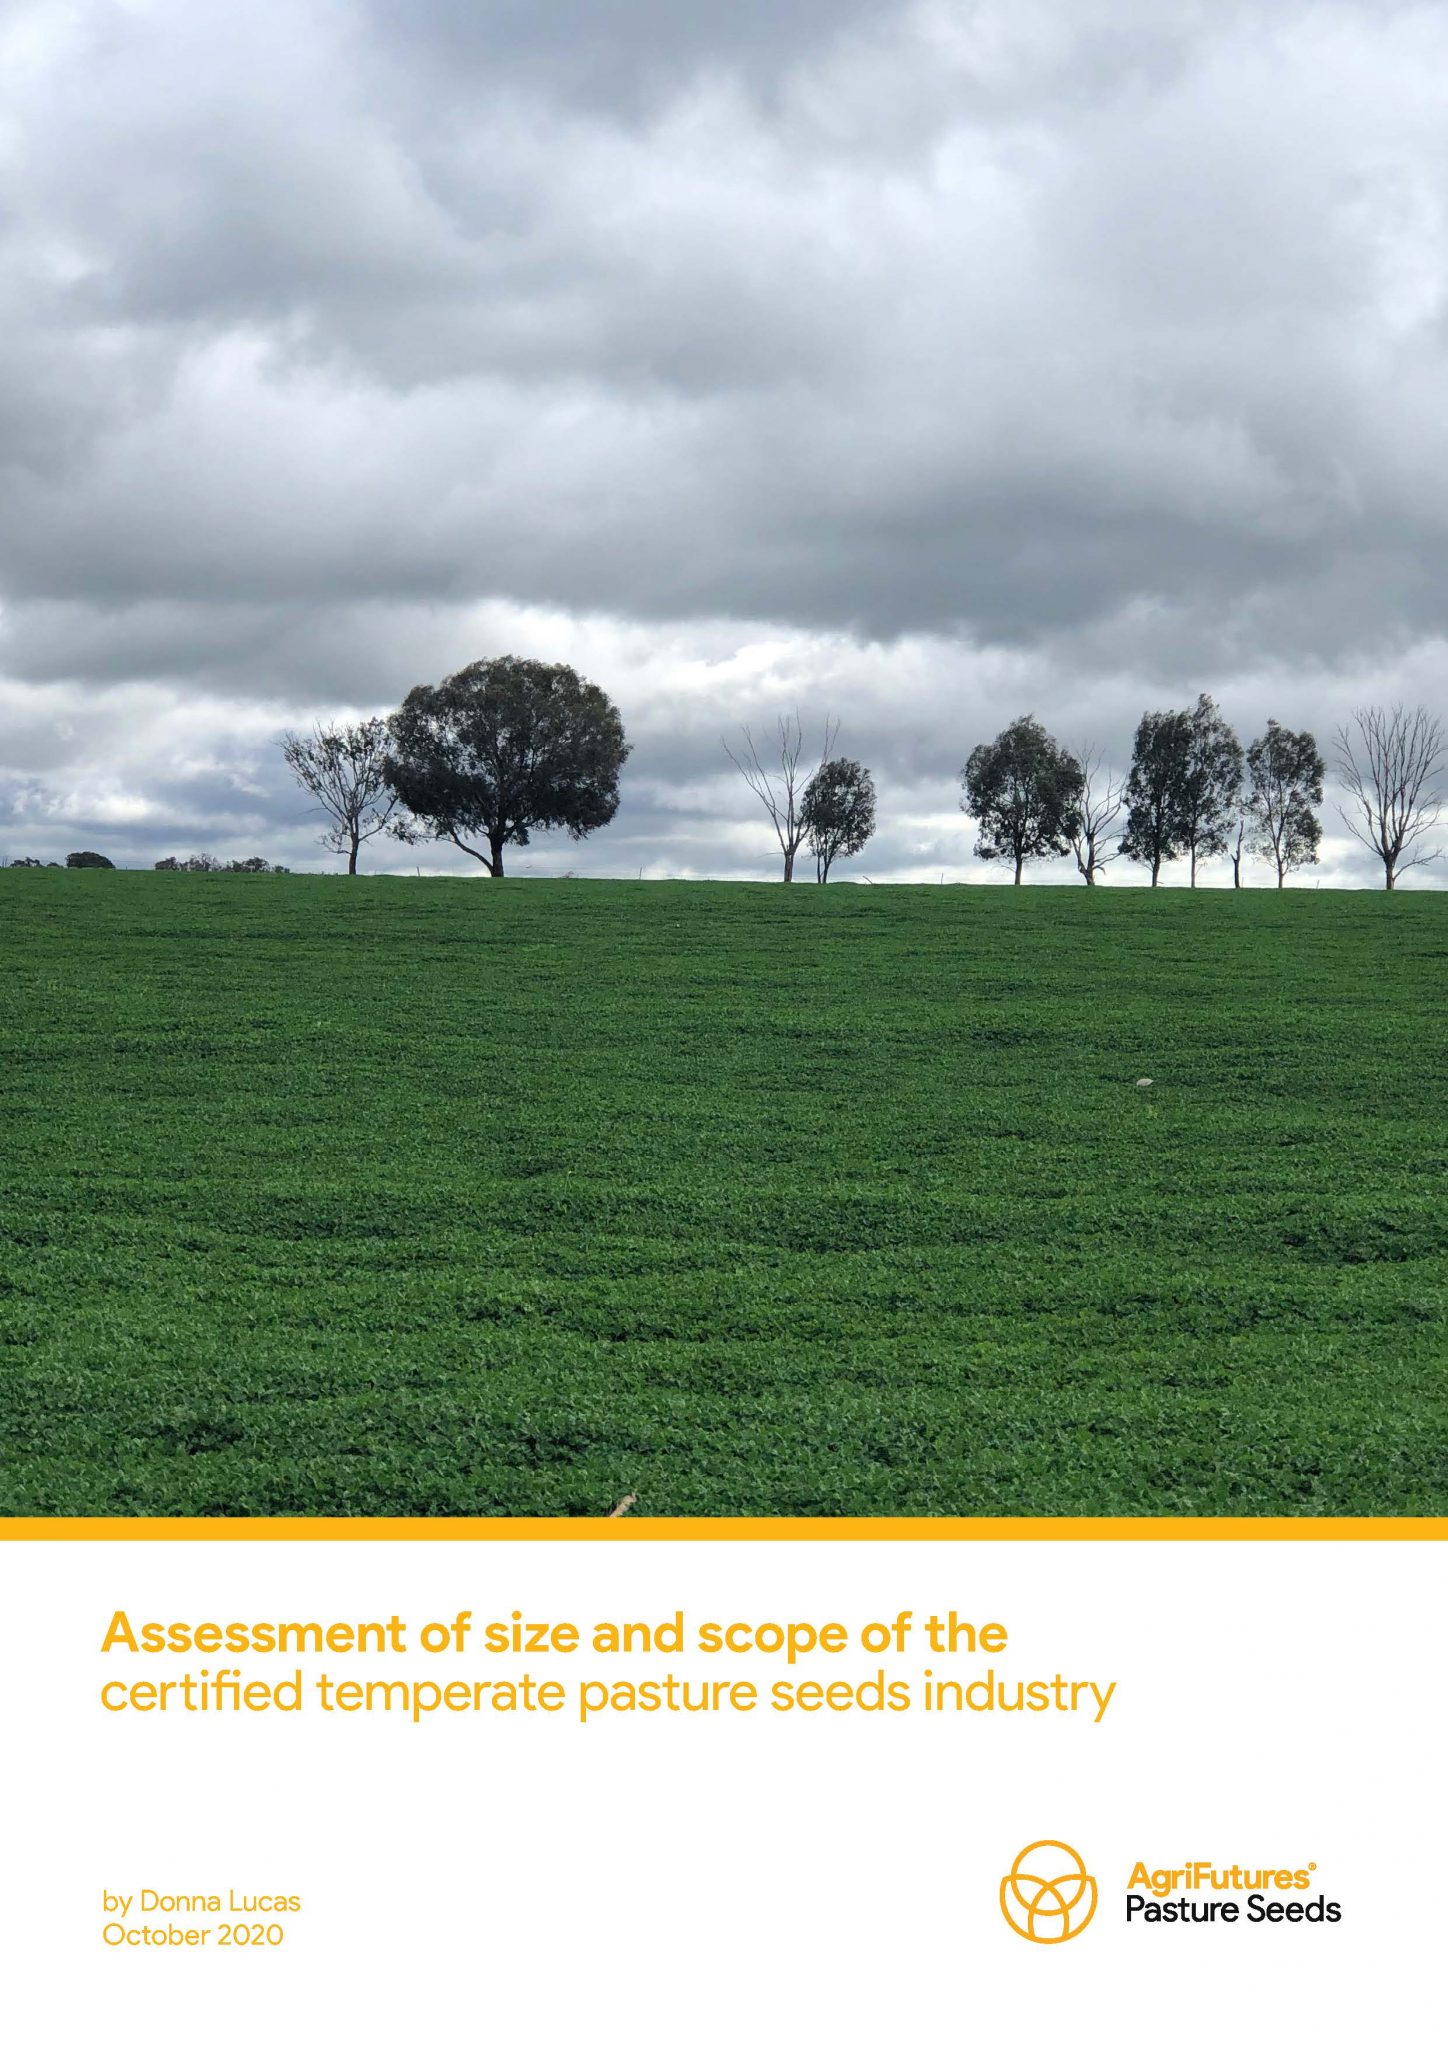 Assessment of size and scope of the certified temperate pasture seeds industry - image